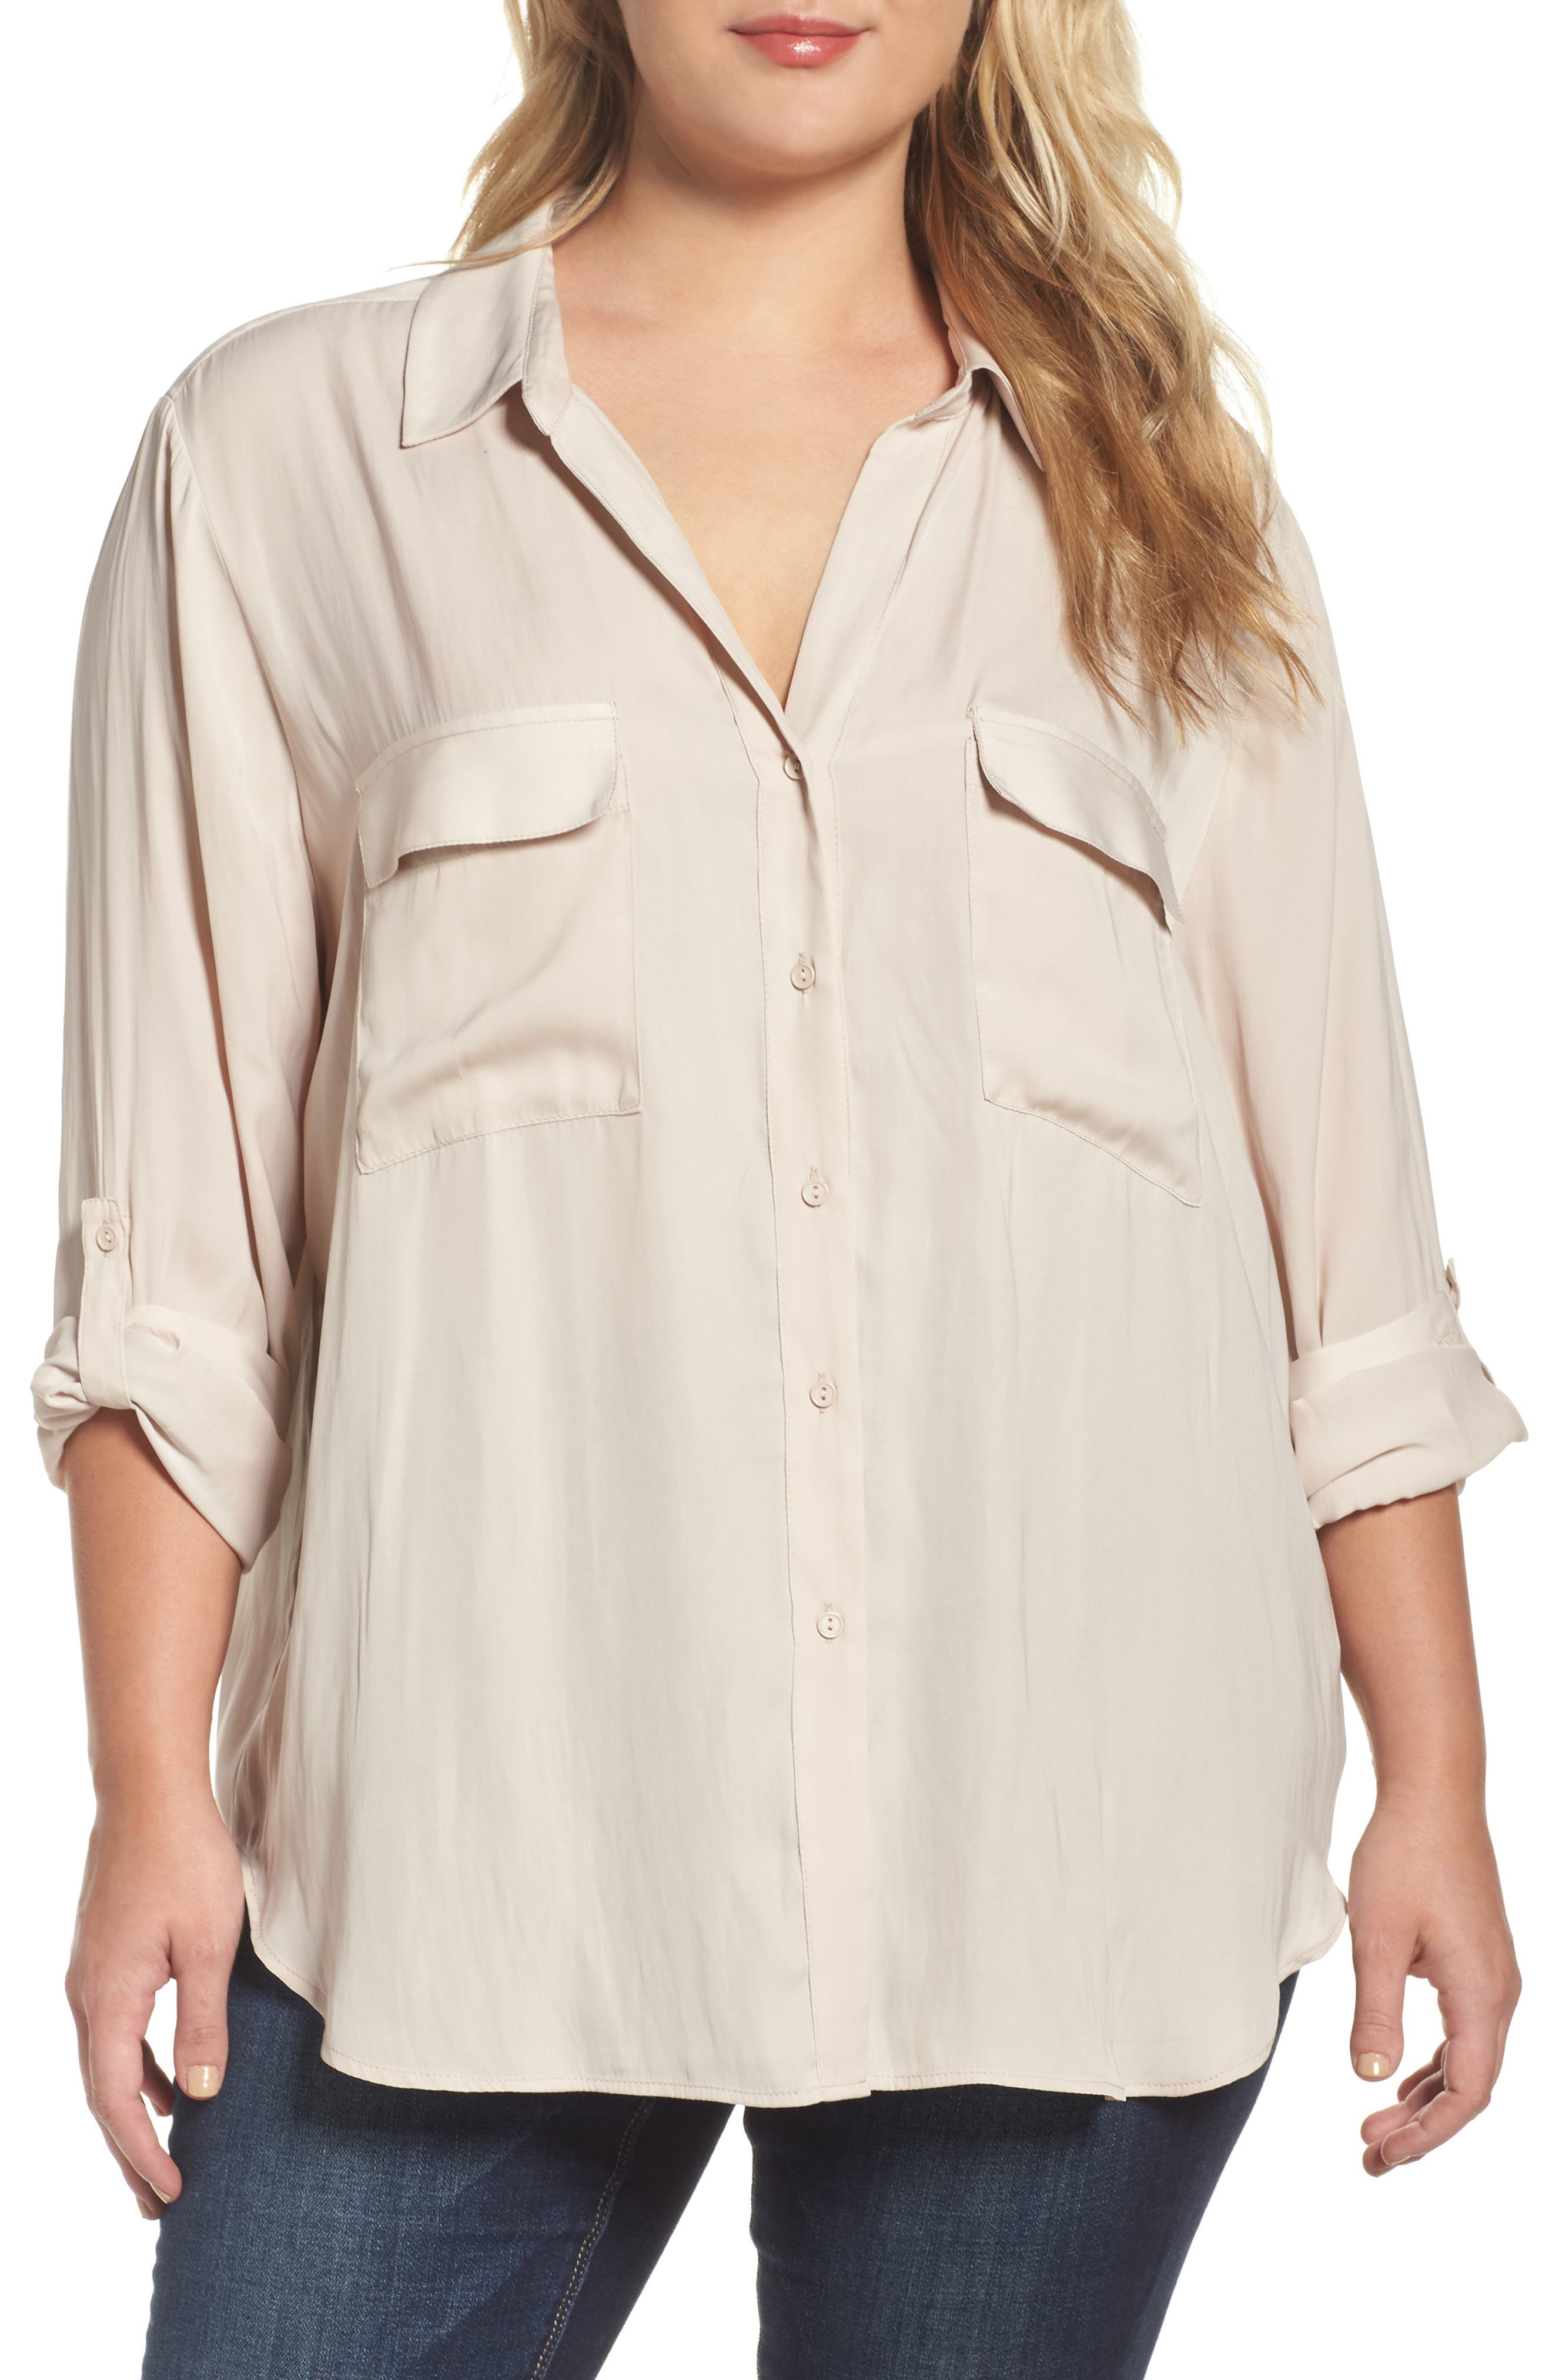 Tart Carol Roll-Sleeve Blouse (Plus Size)